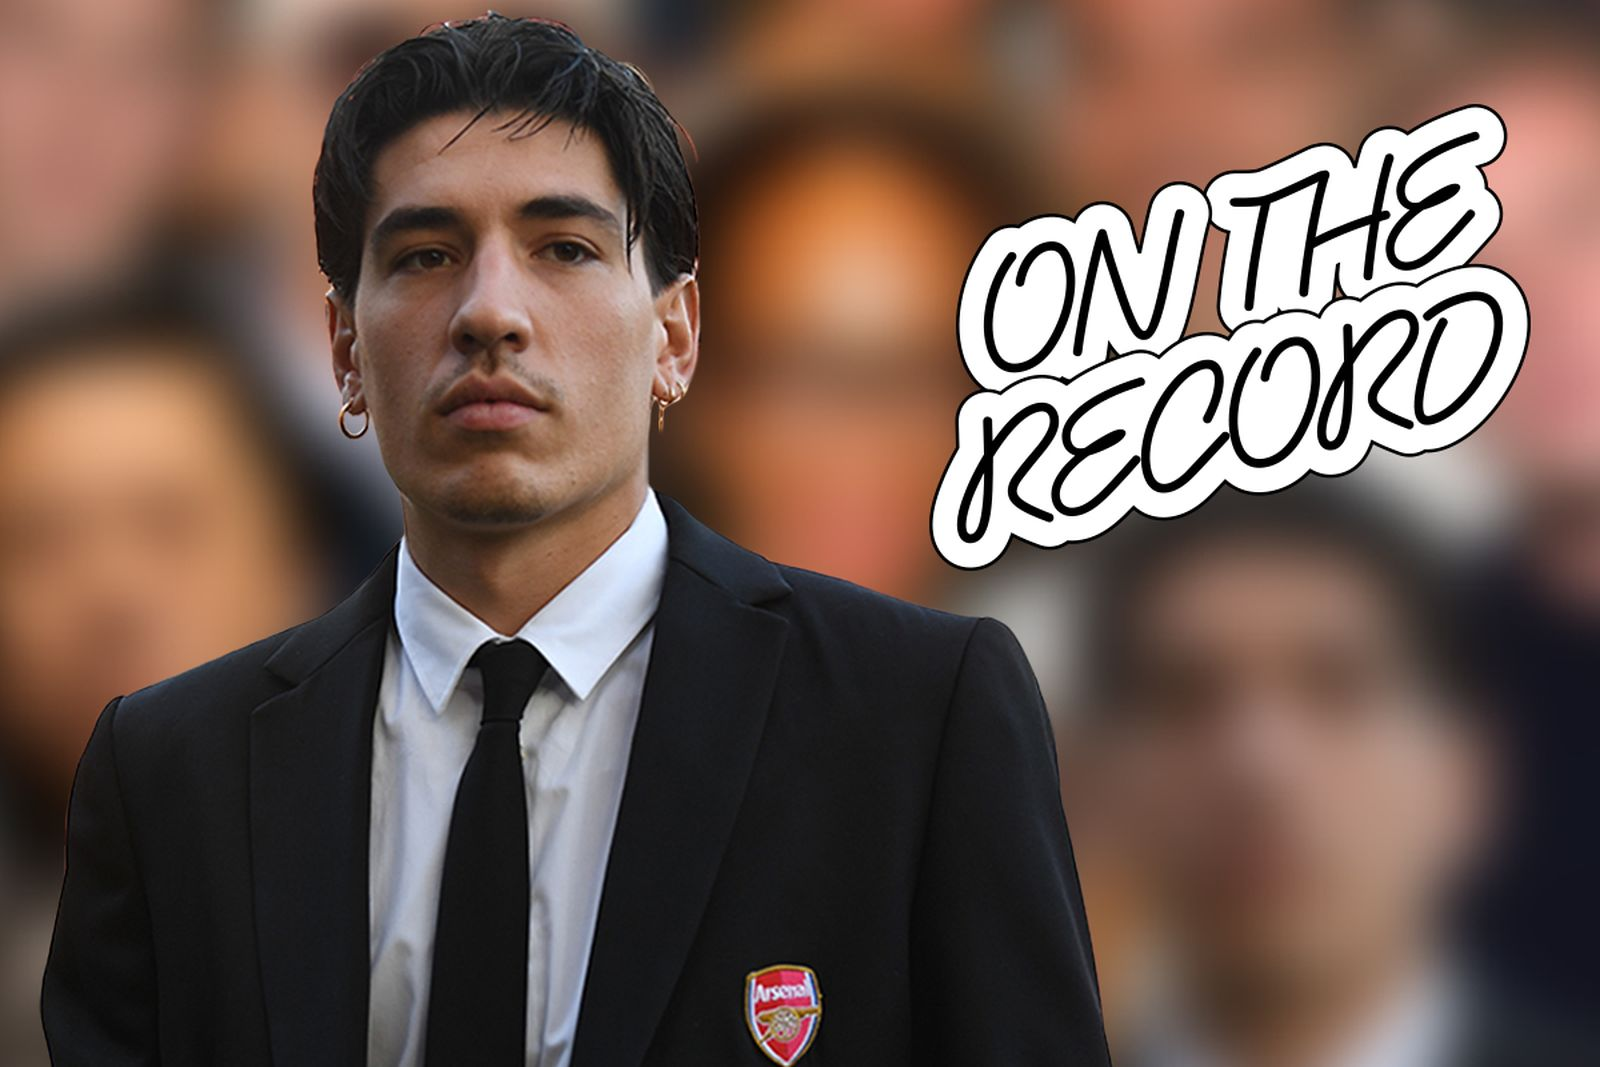 ED_PC_On_The_Record_Hector_Bellerin_800